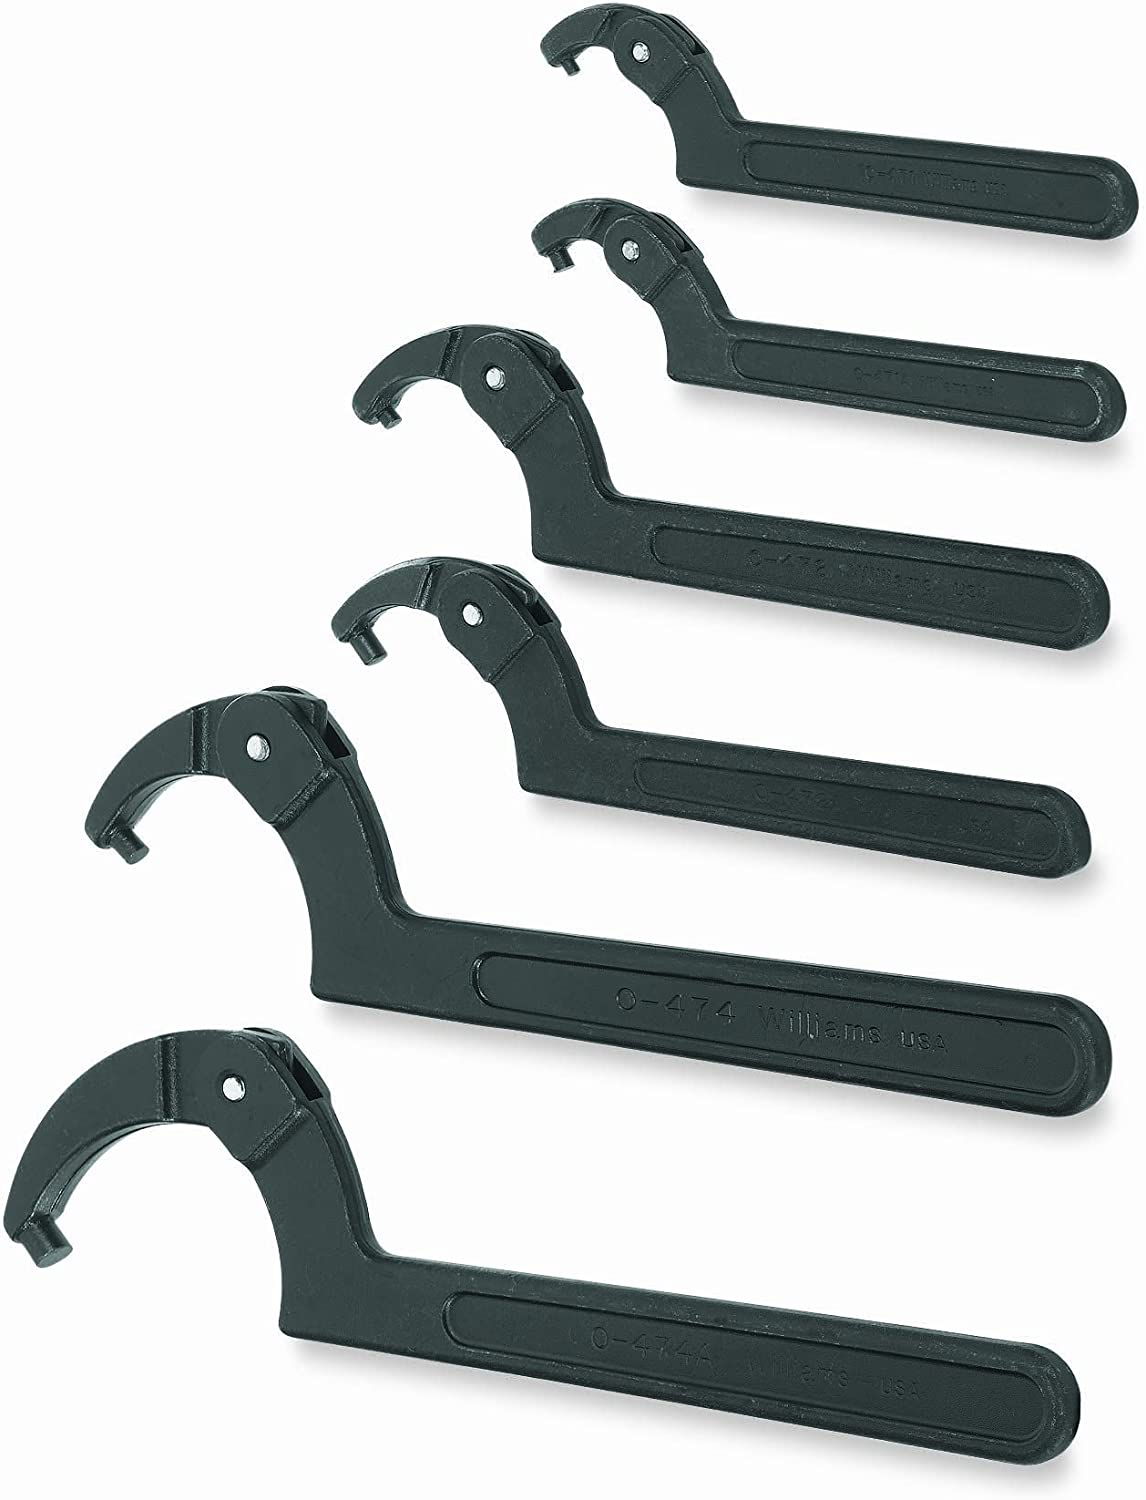 Williams WS-483 3-Piece Adjustable Face Spanner Wrench Set Snap-on Industrial Brand JH Williams